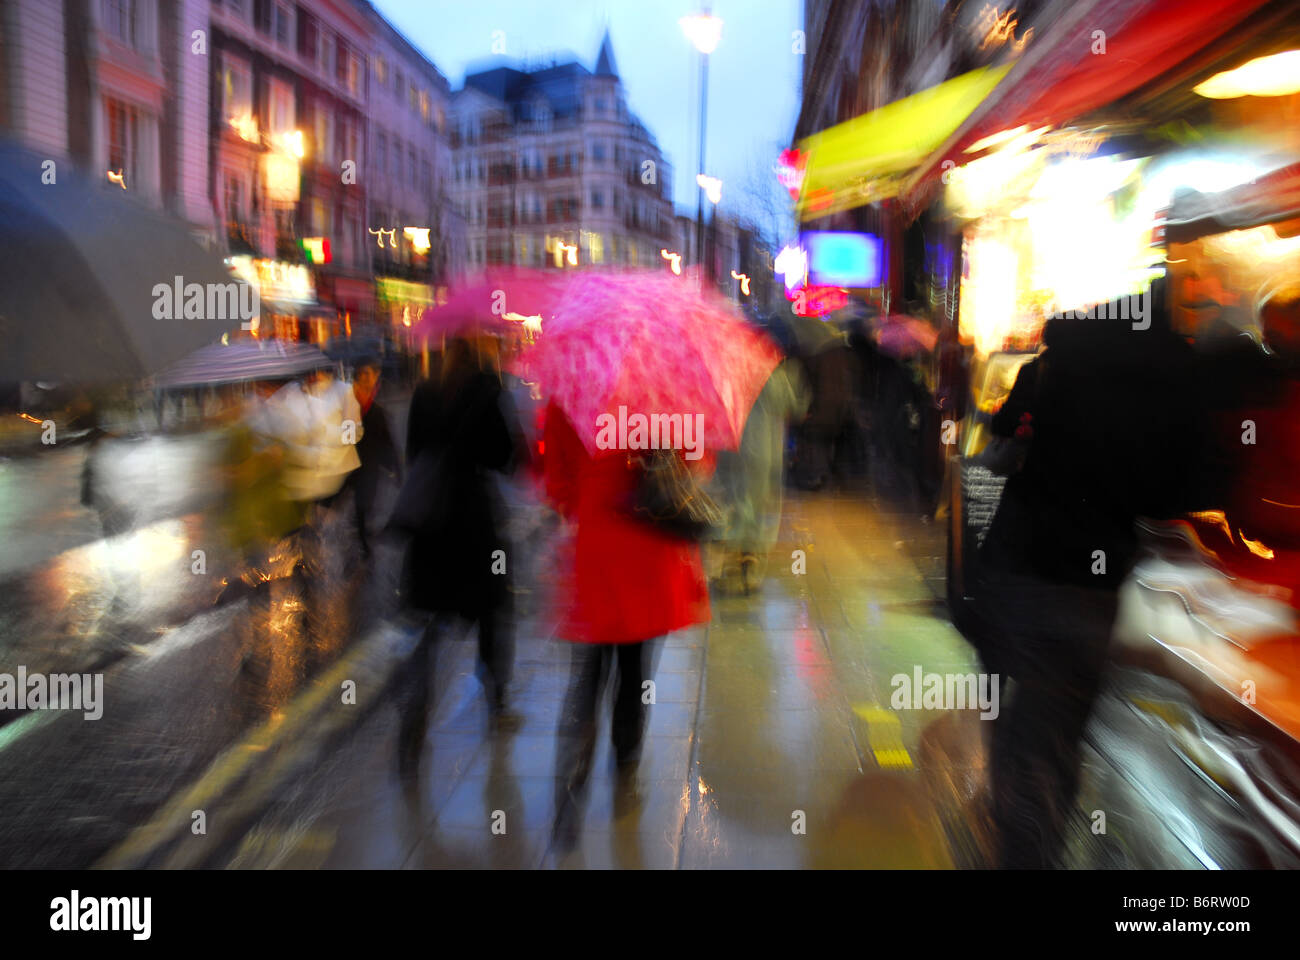 Rainy London street with shoppers and umbrellas - Stock Image